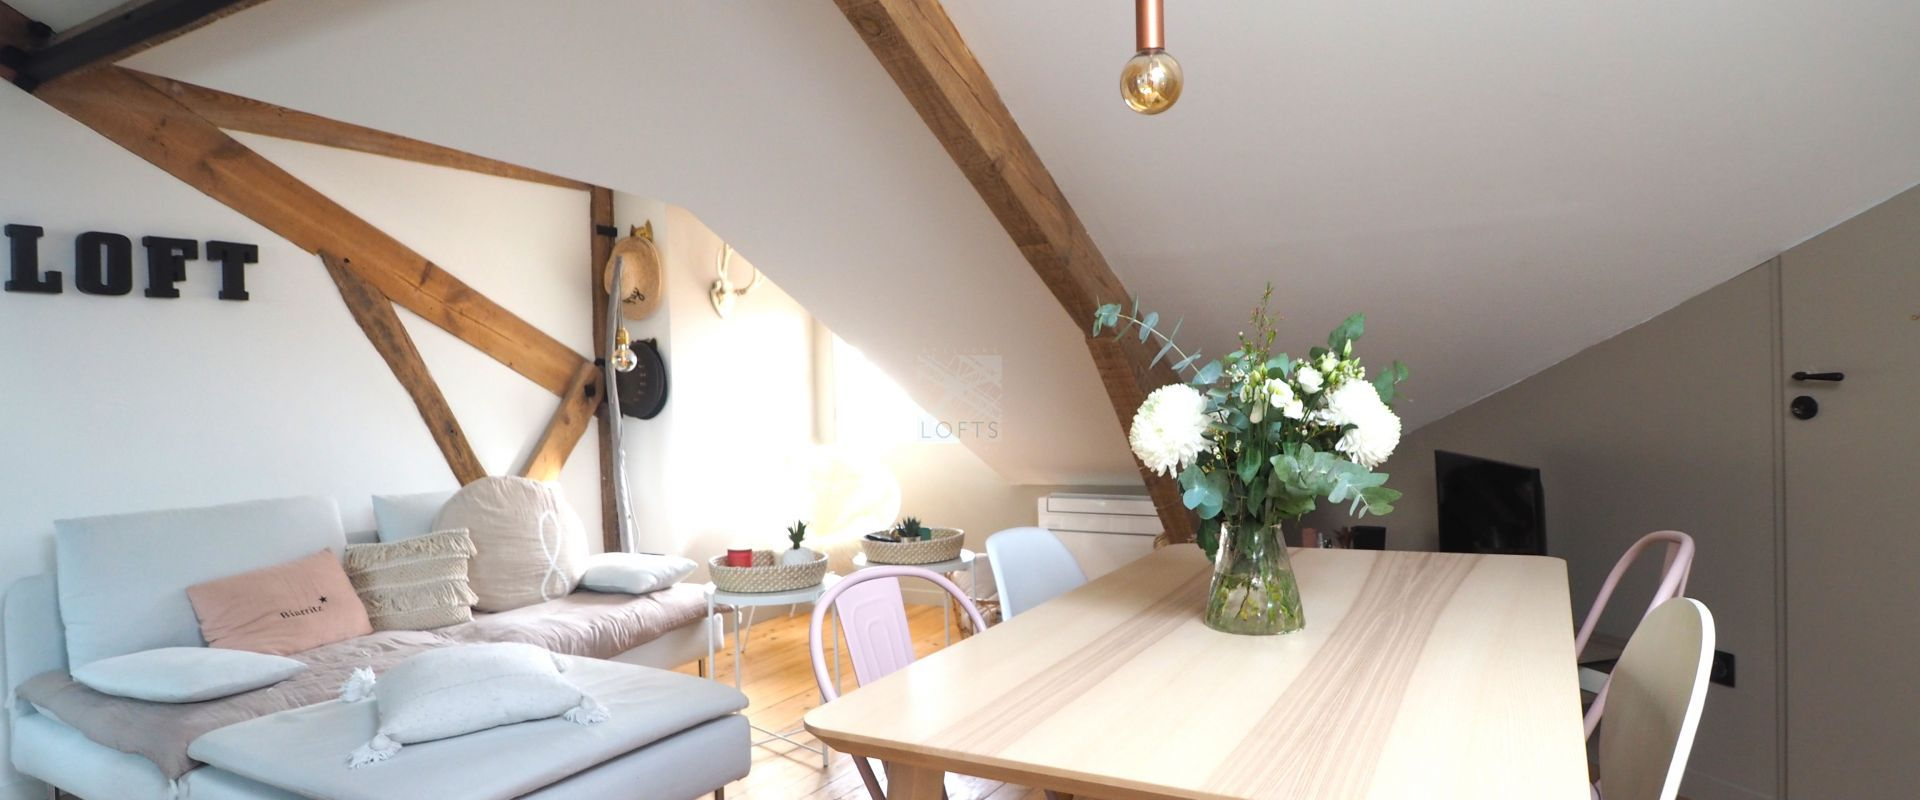 "CHARMING APARTMENT ""UNDER THE ROOFS"" IN THE CITY CENTER"